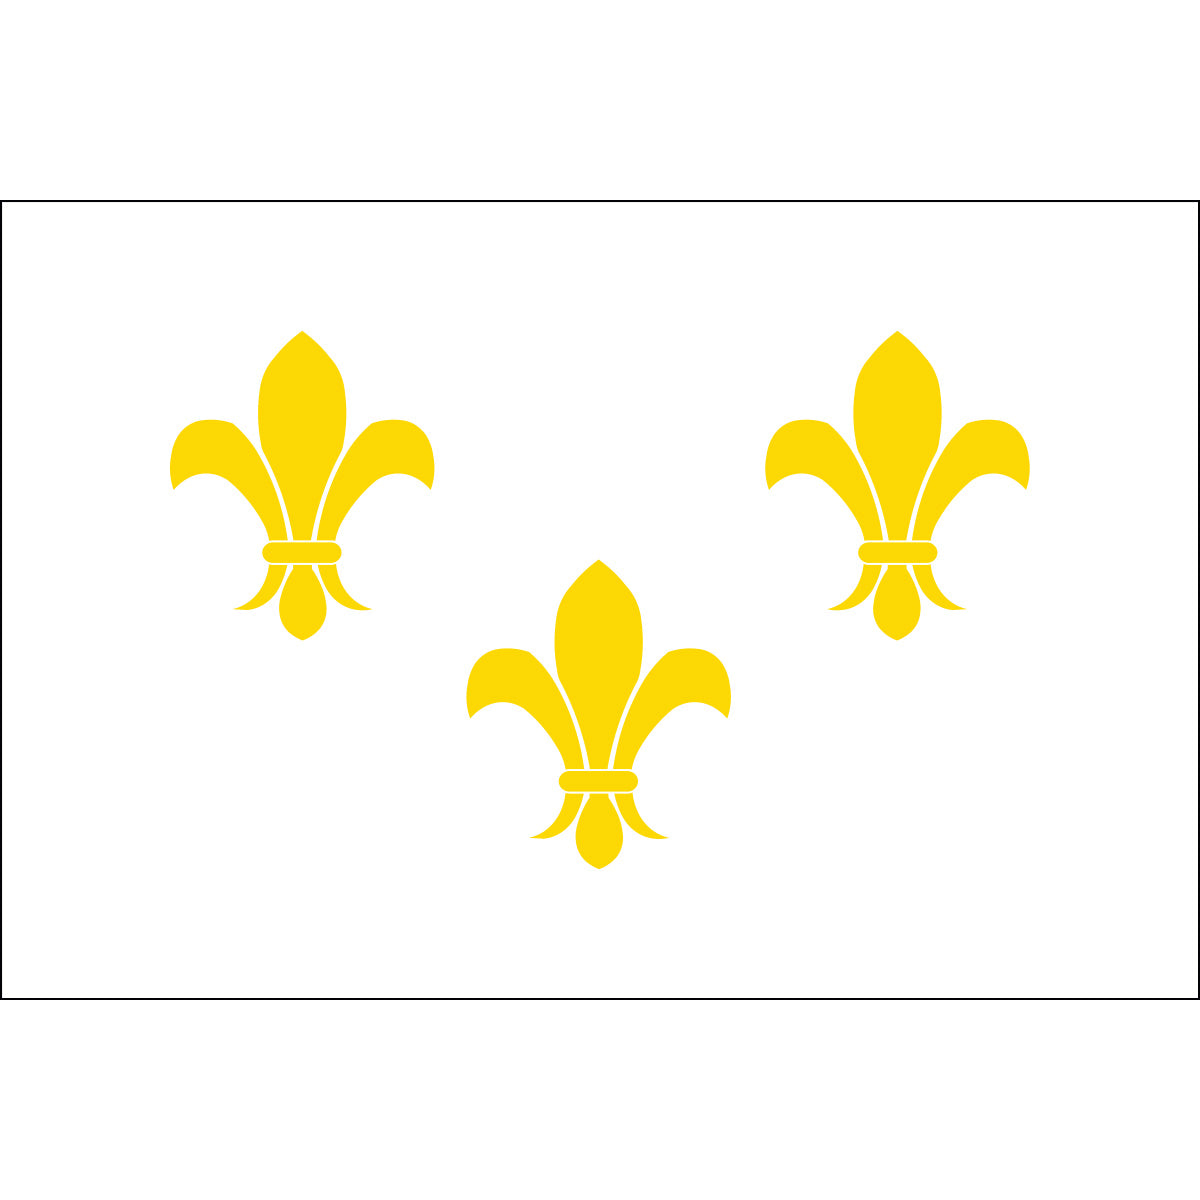 Load image into Gallery viewer, 3x5 French Fleur de lis with White Background Historical Nylon Flag